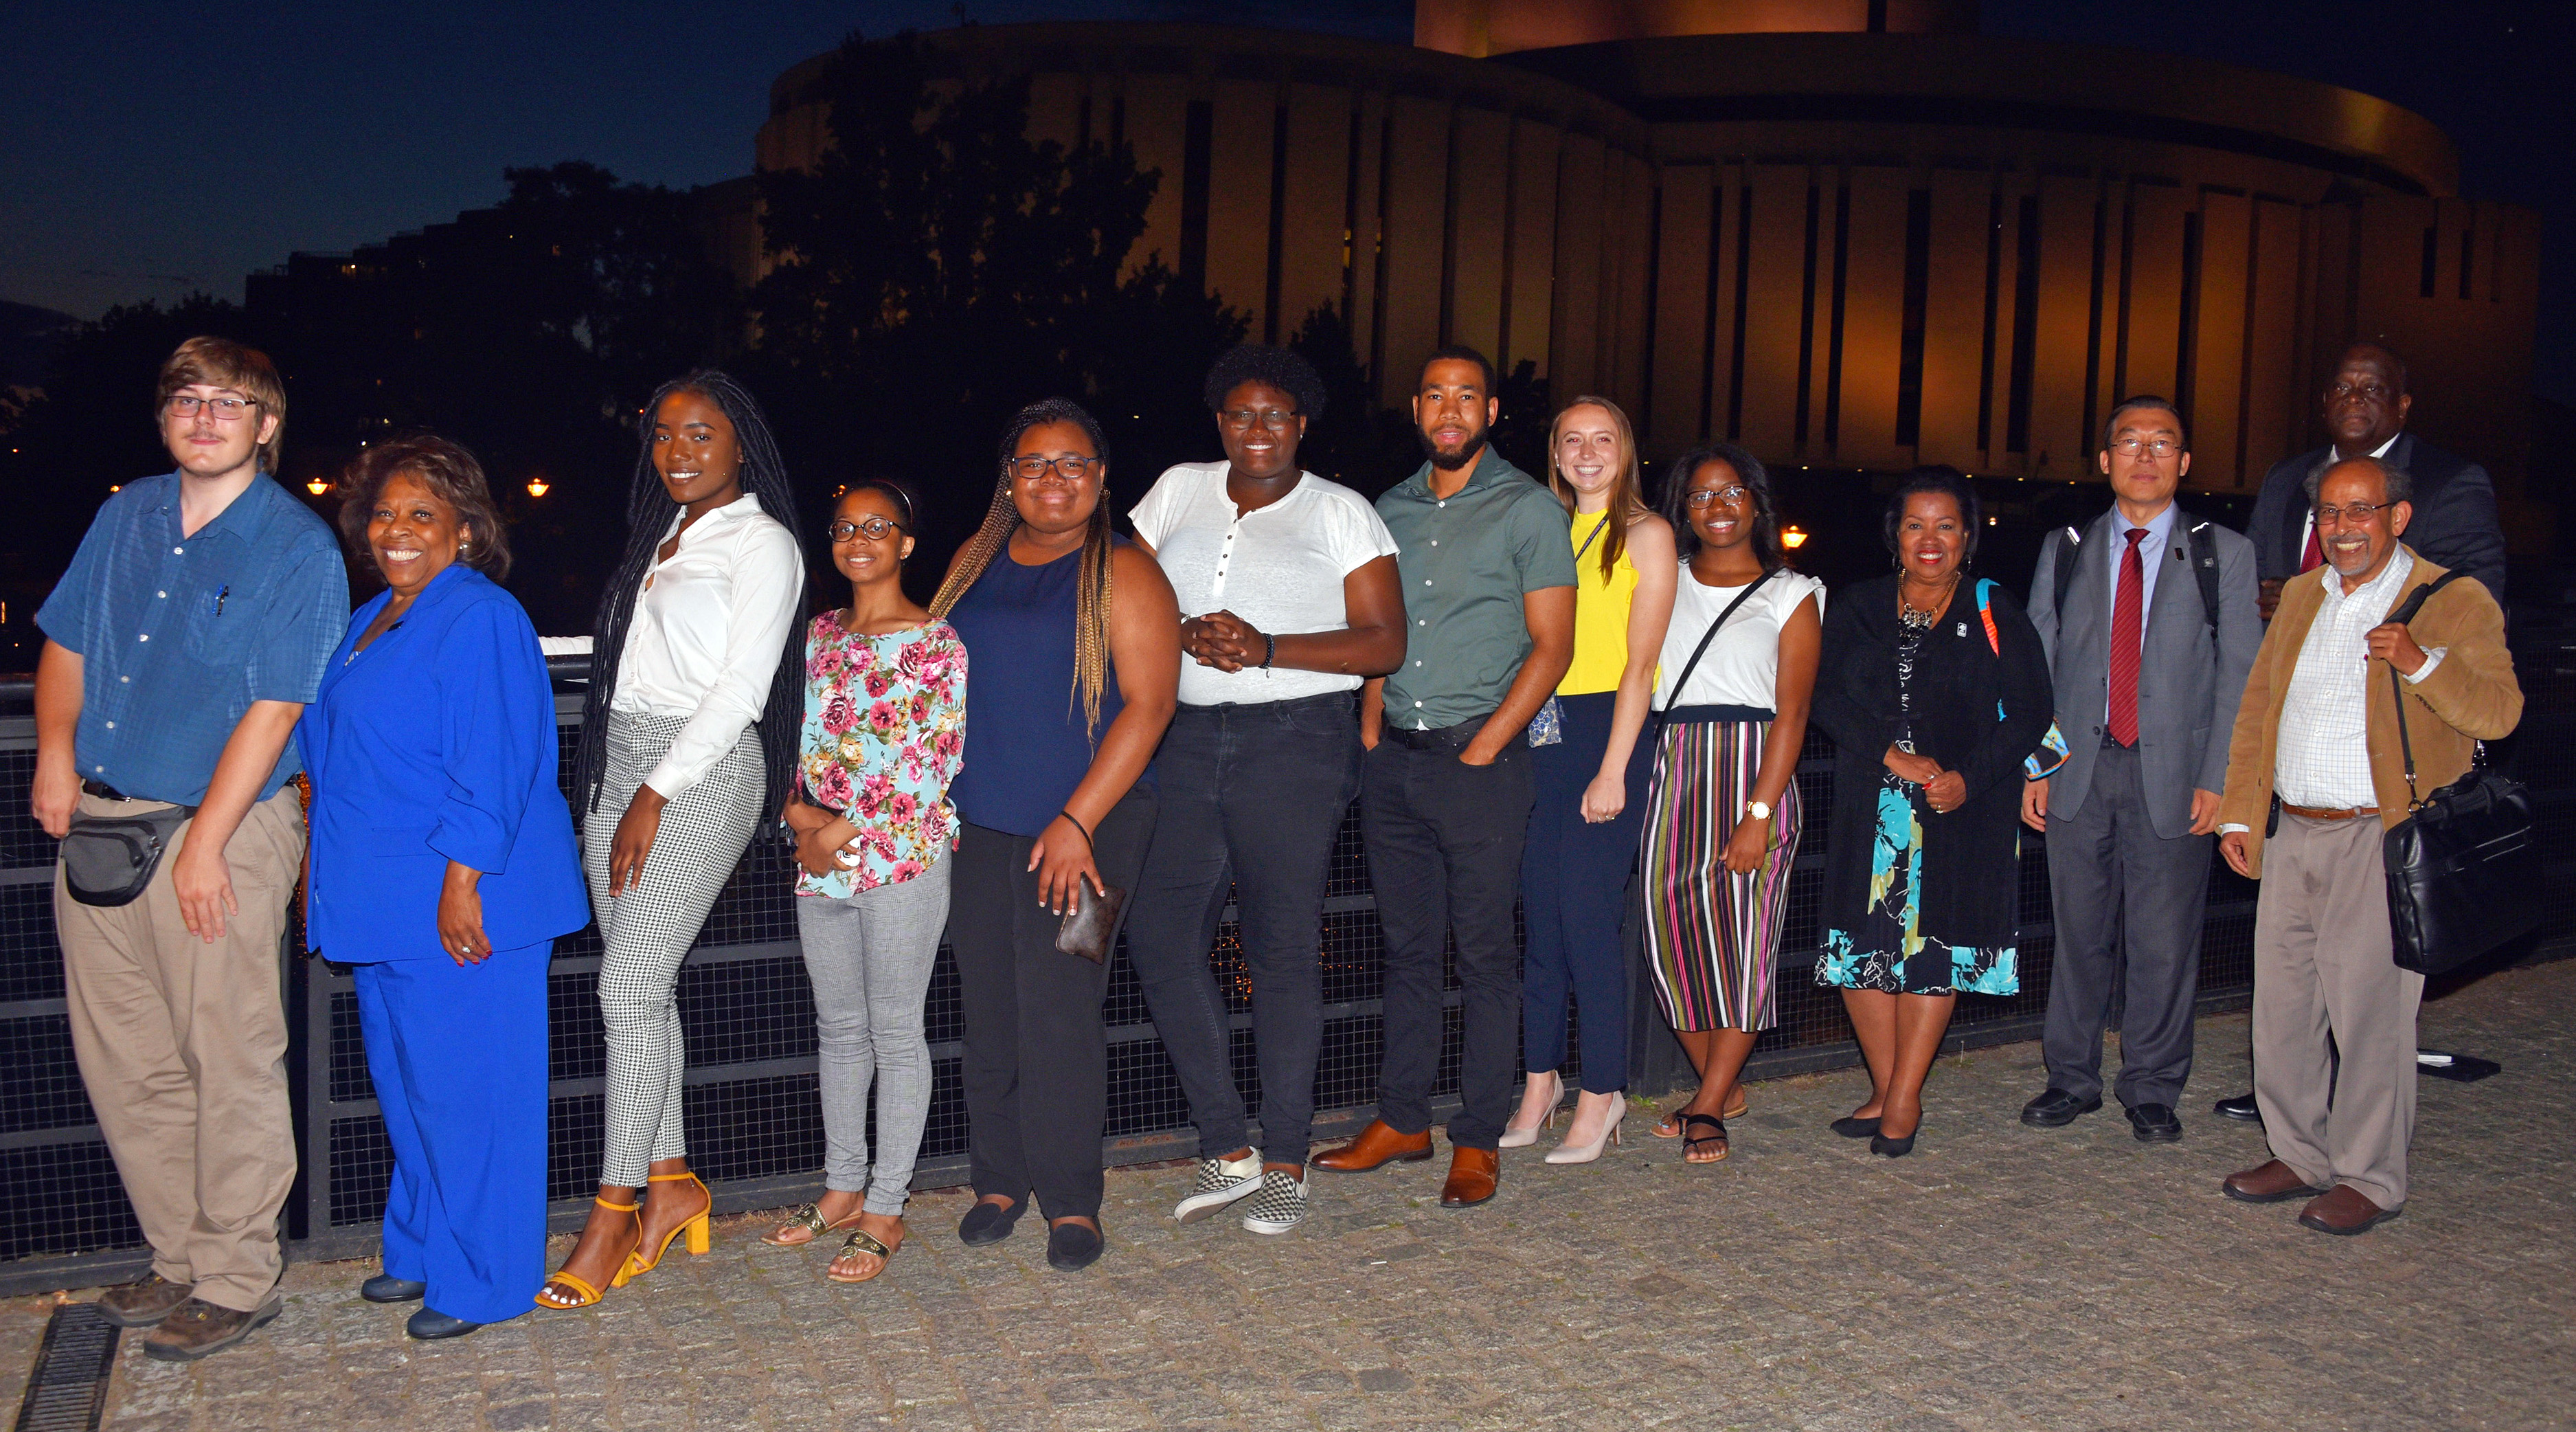 After dinner photo: (l-r) Dominic Morrell, University President Wilma Mishoe, Juliana Paul, Mykia Toney, Destiny King, Kishaye Williams, Corban Weatherspoon, Pamela Schork, Jacori Small, Board of Trustees Chairperson Devona Williams, along with Dr. Fengshan Liu, associate VP of International Affairs, Dr. Mazen Shahin, AMP Director, and Tony Boyle, VP of Strategic Enrollment Management.